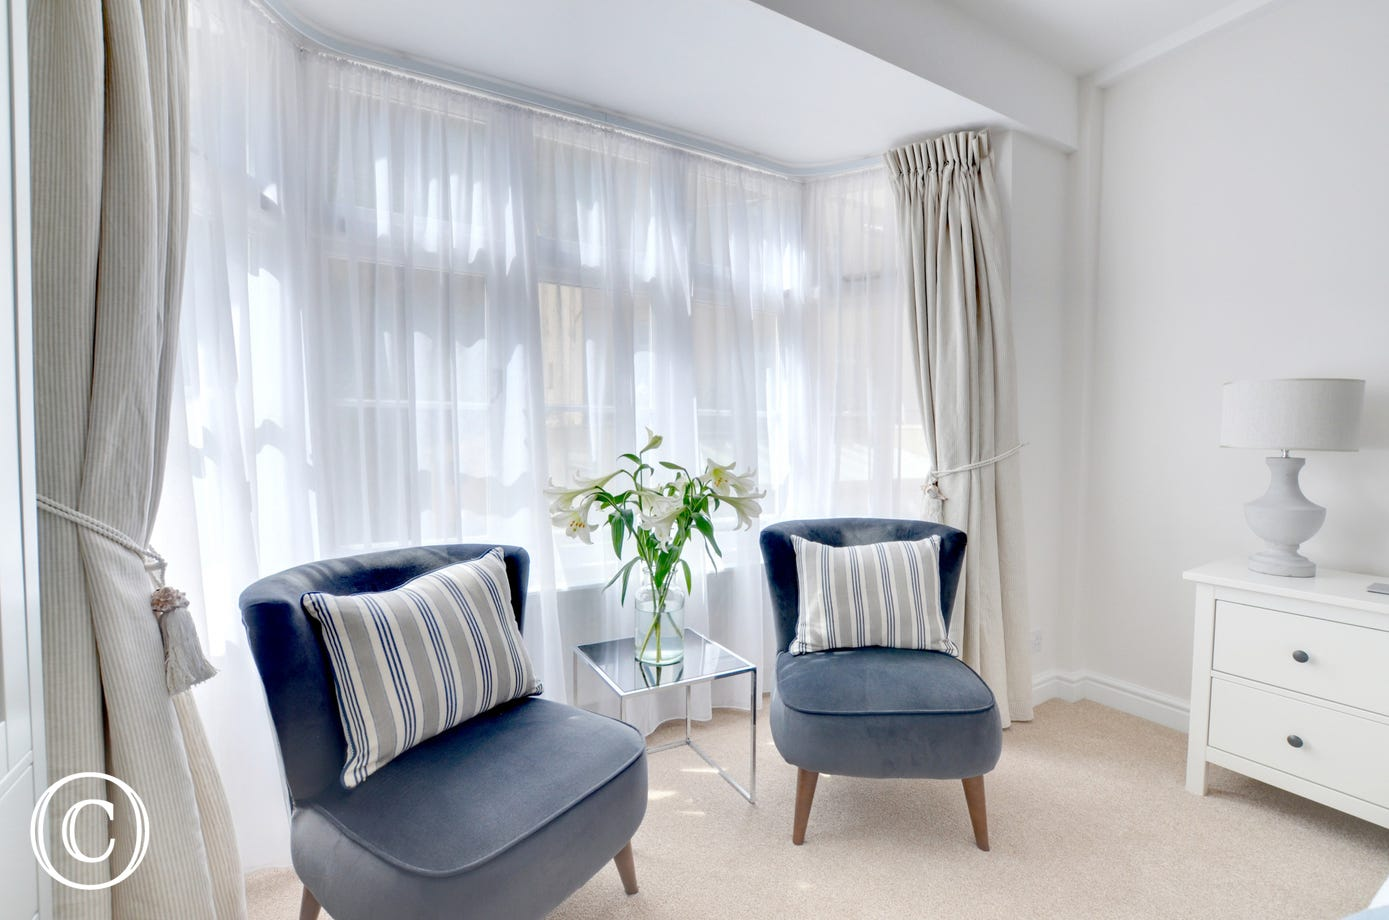 Comfortable seating in the beautiful master bedroom